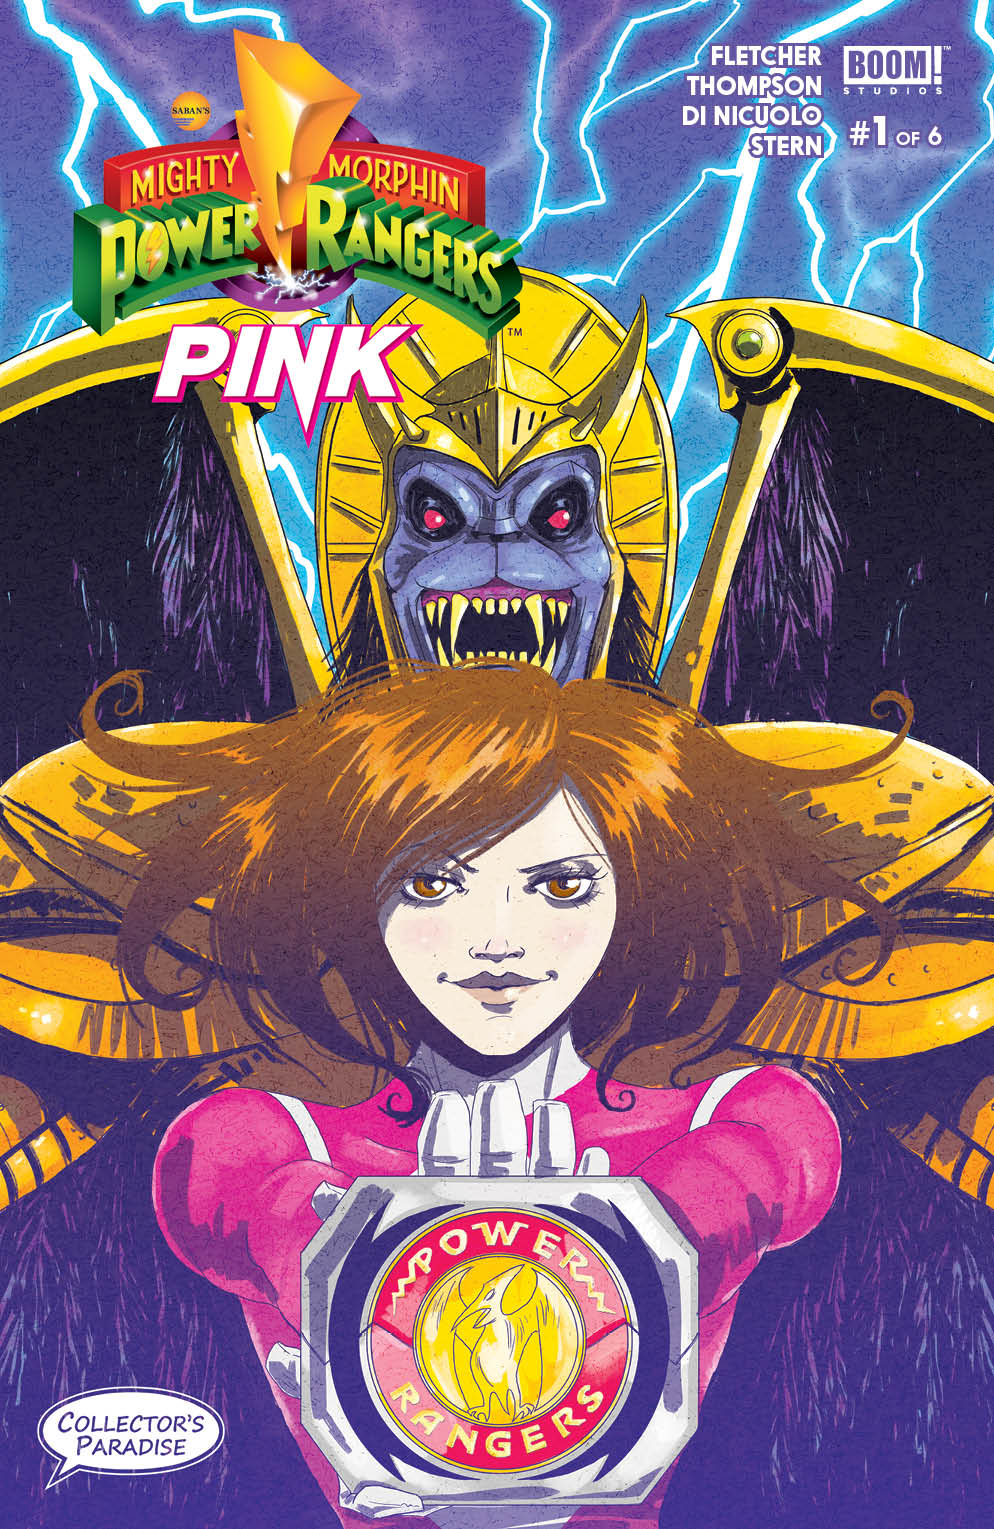 Mighty Morphin Power Rangers: Pink 0001 Collectors Paradise